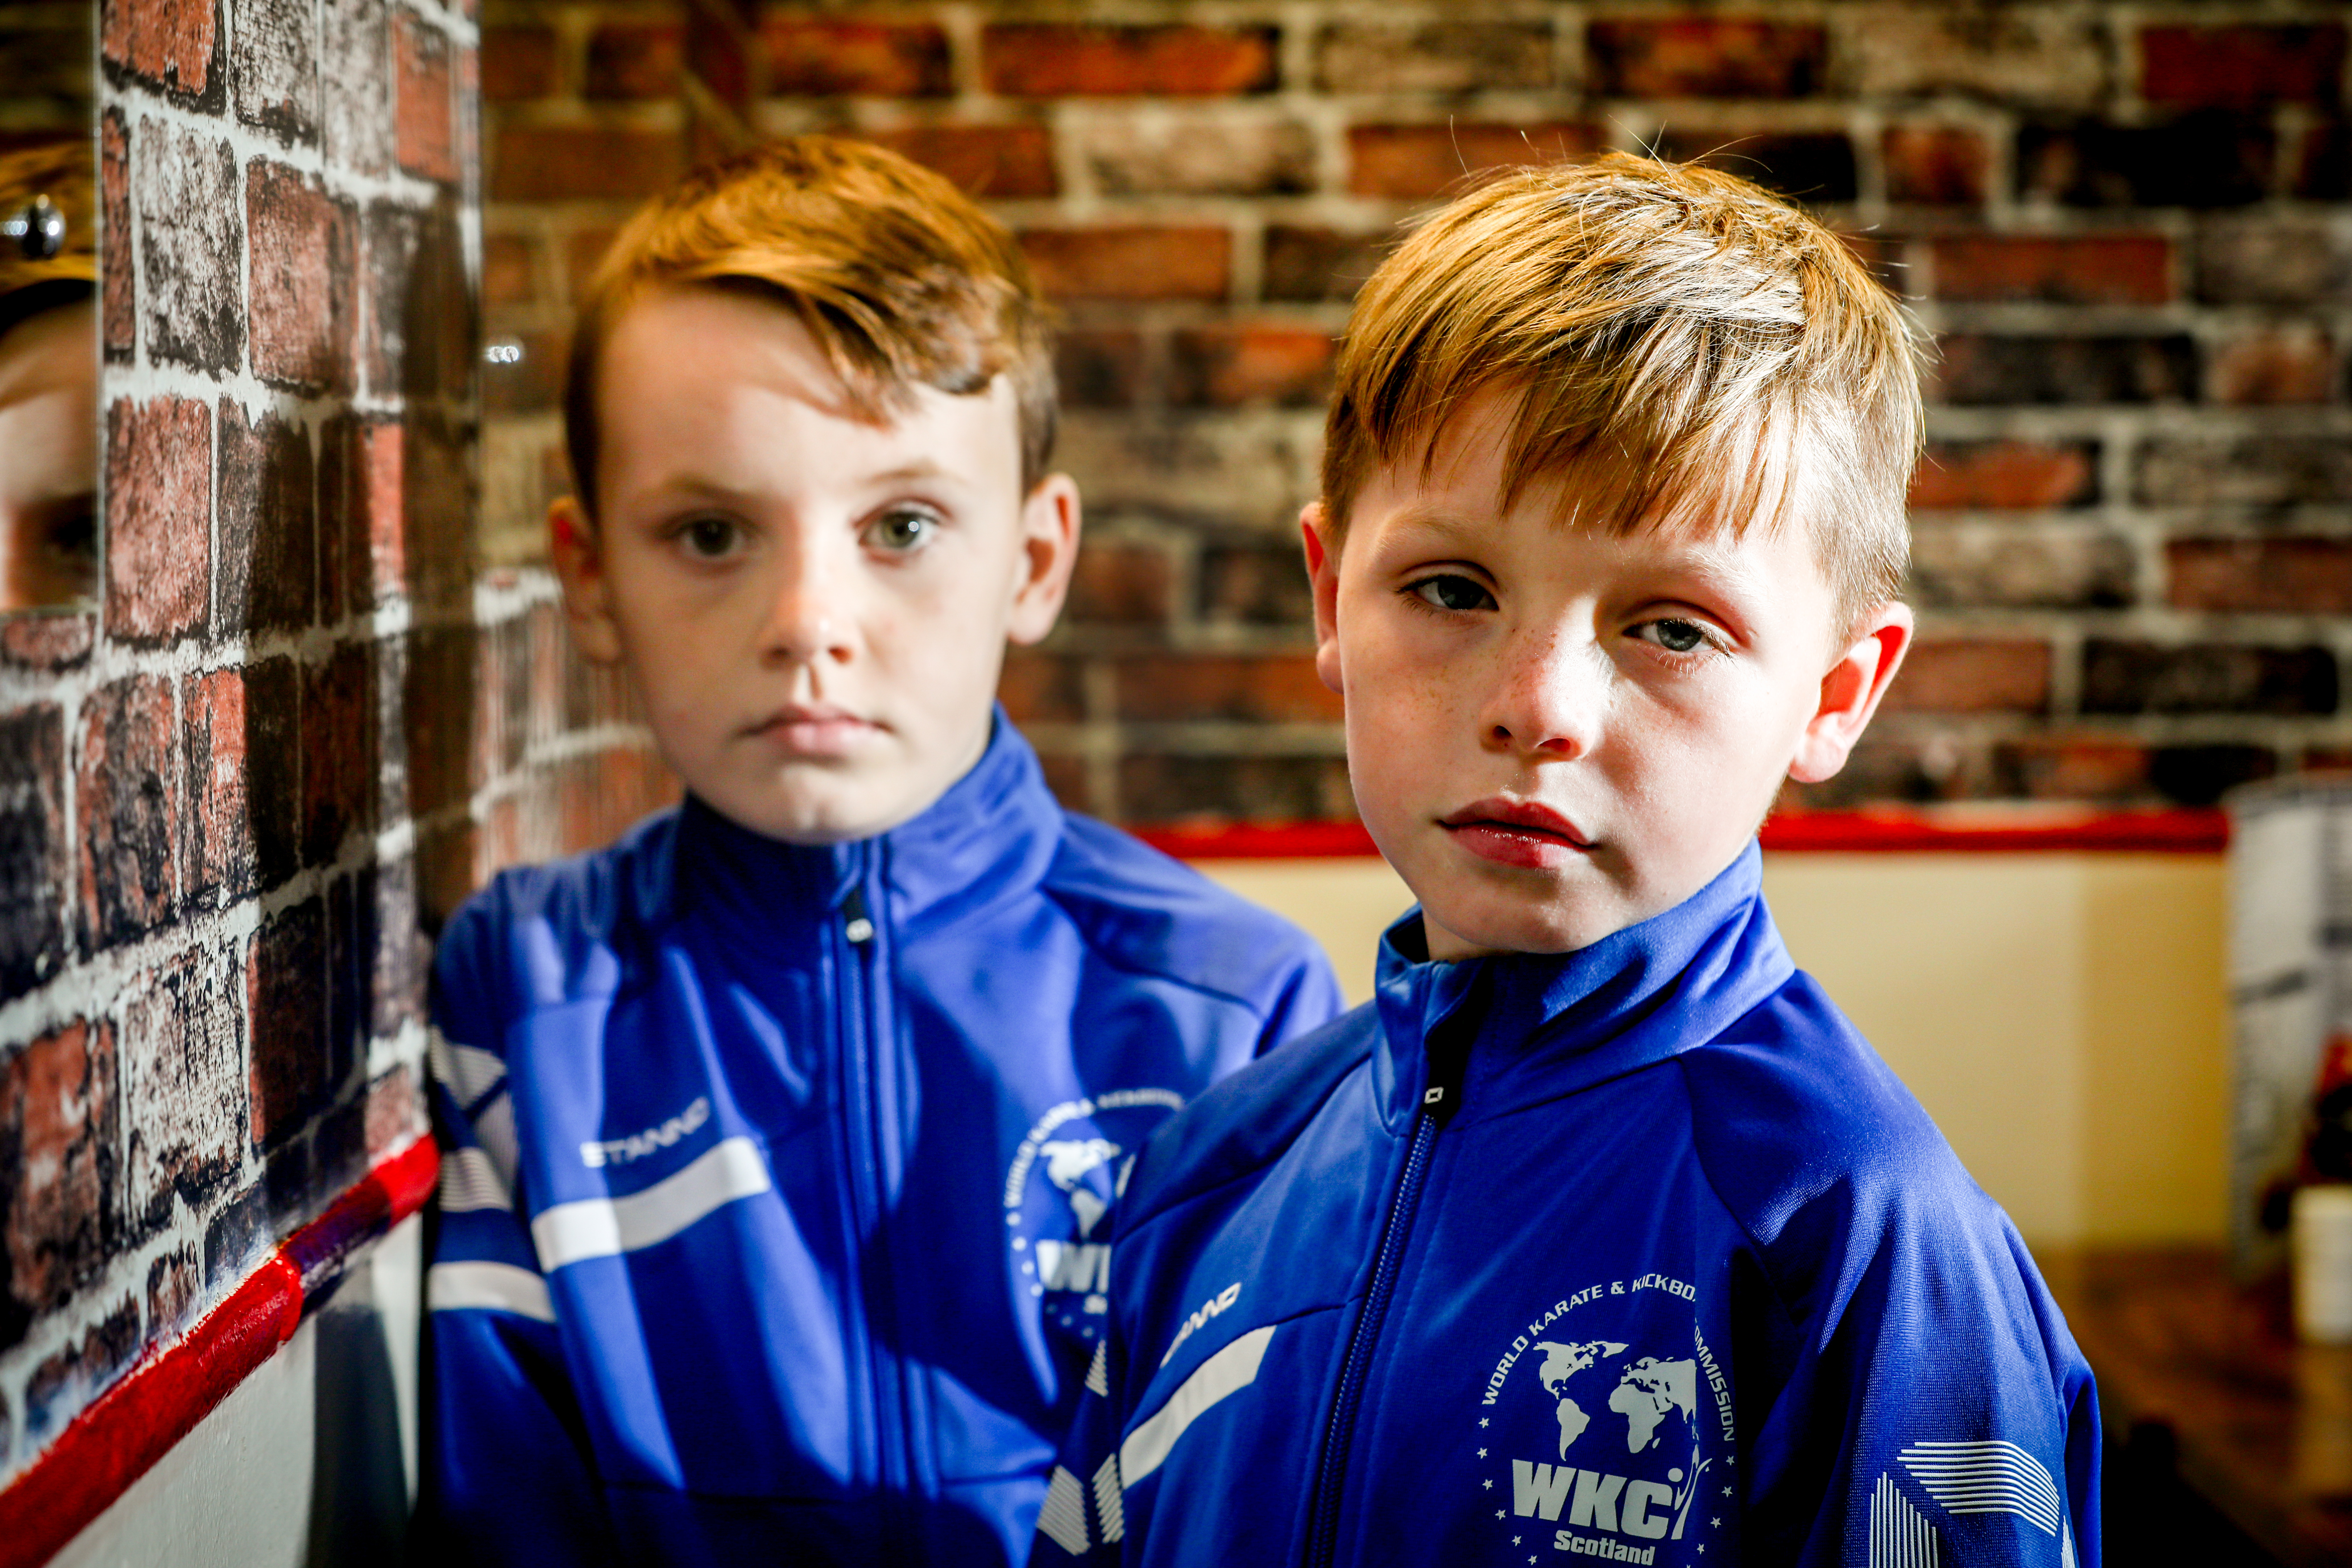 Young fighters Derren Currie and Riley Wanless